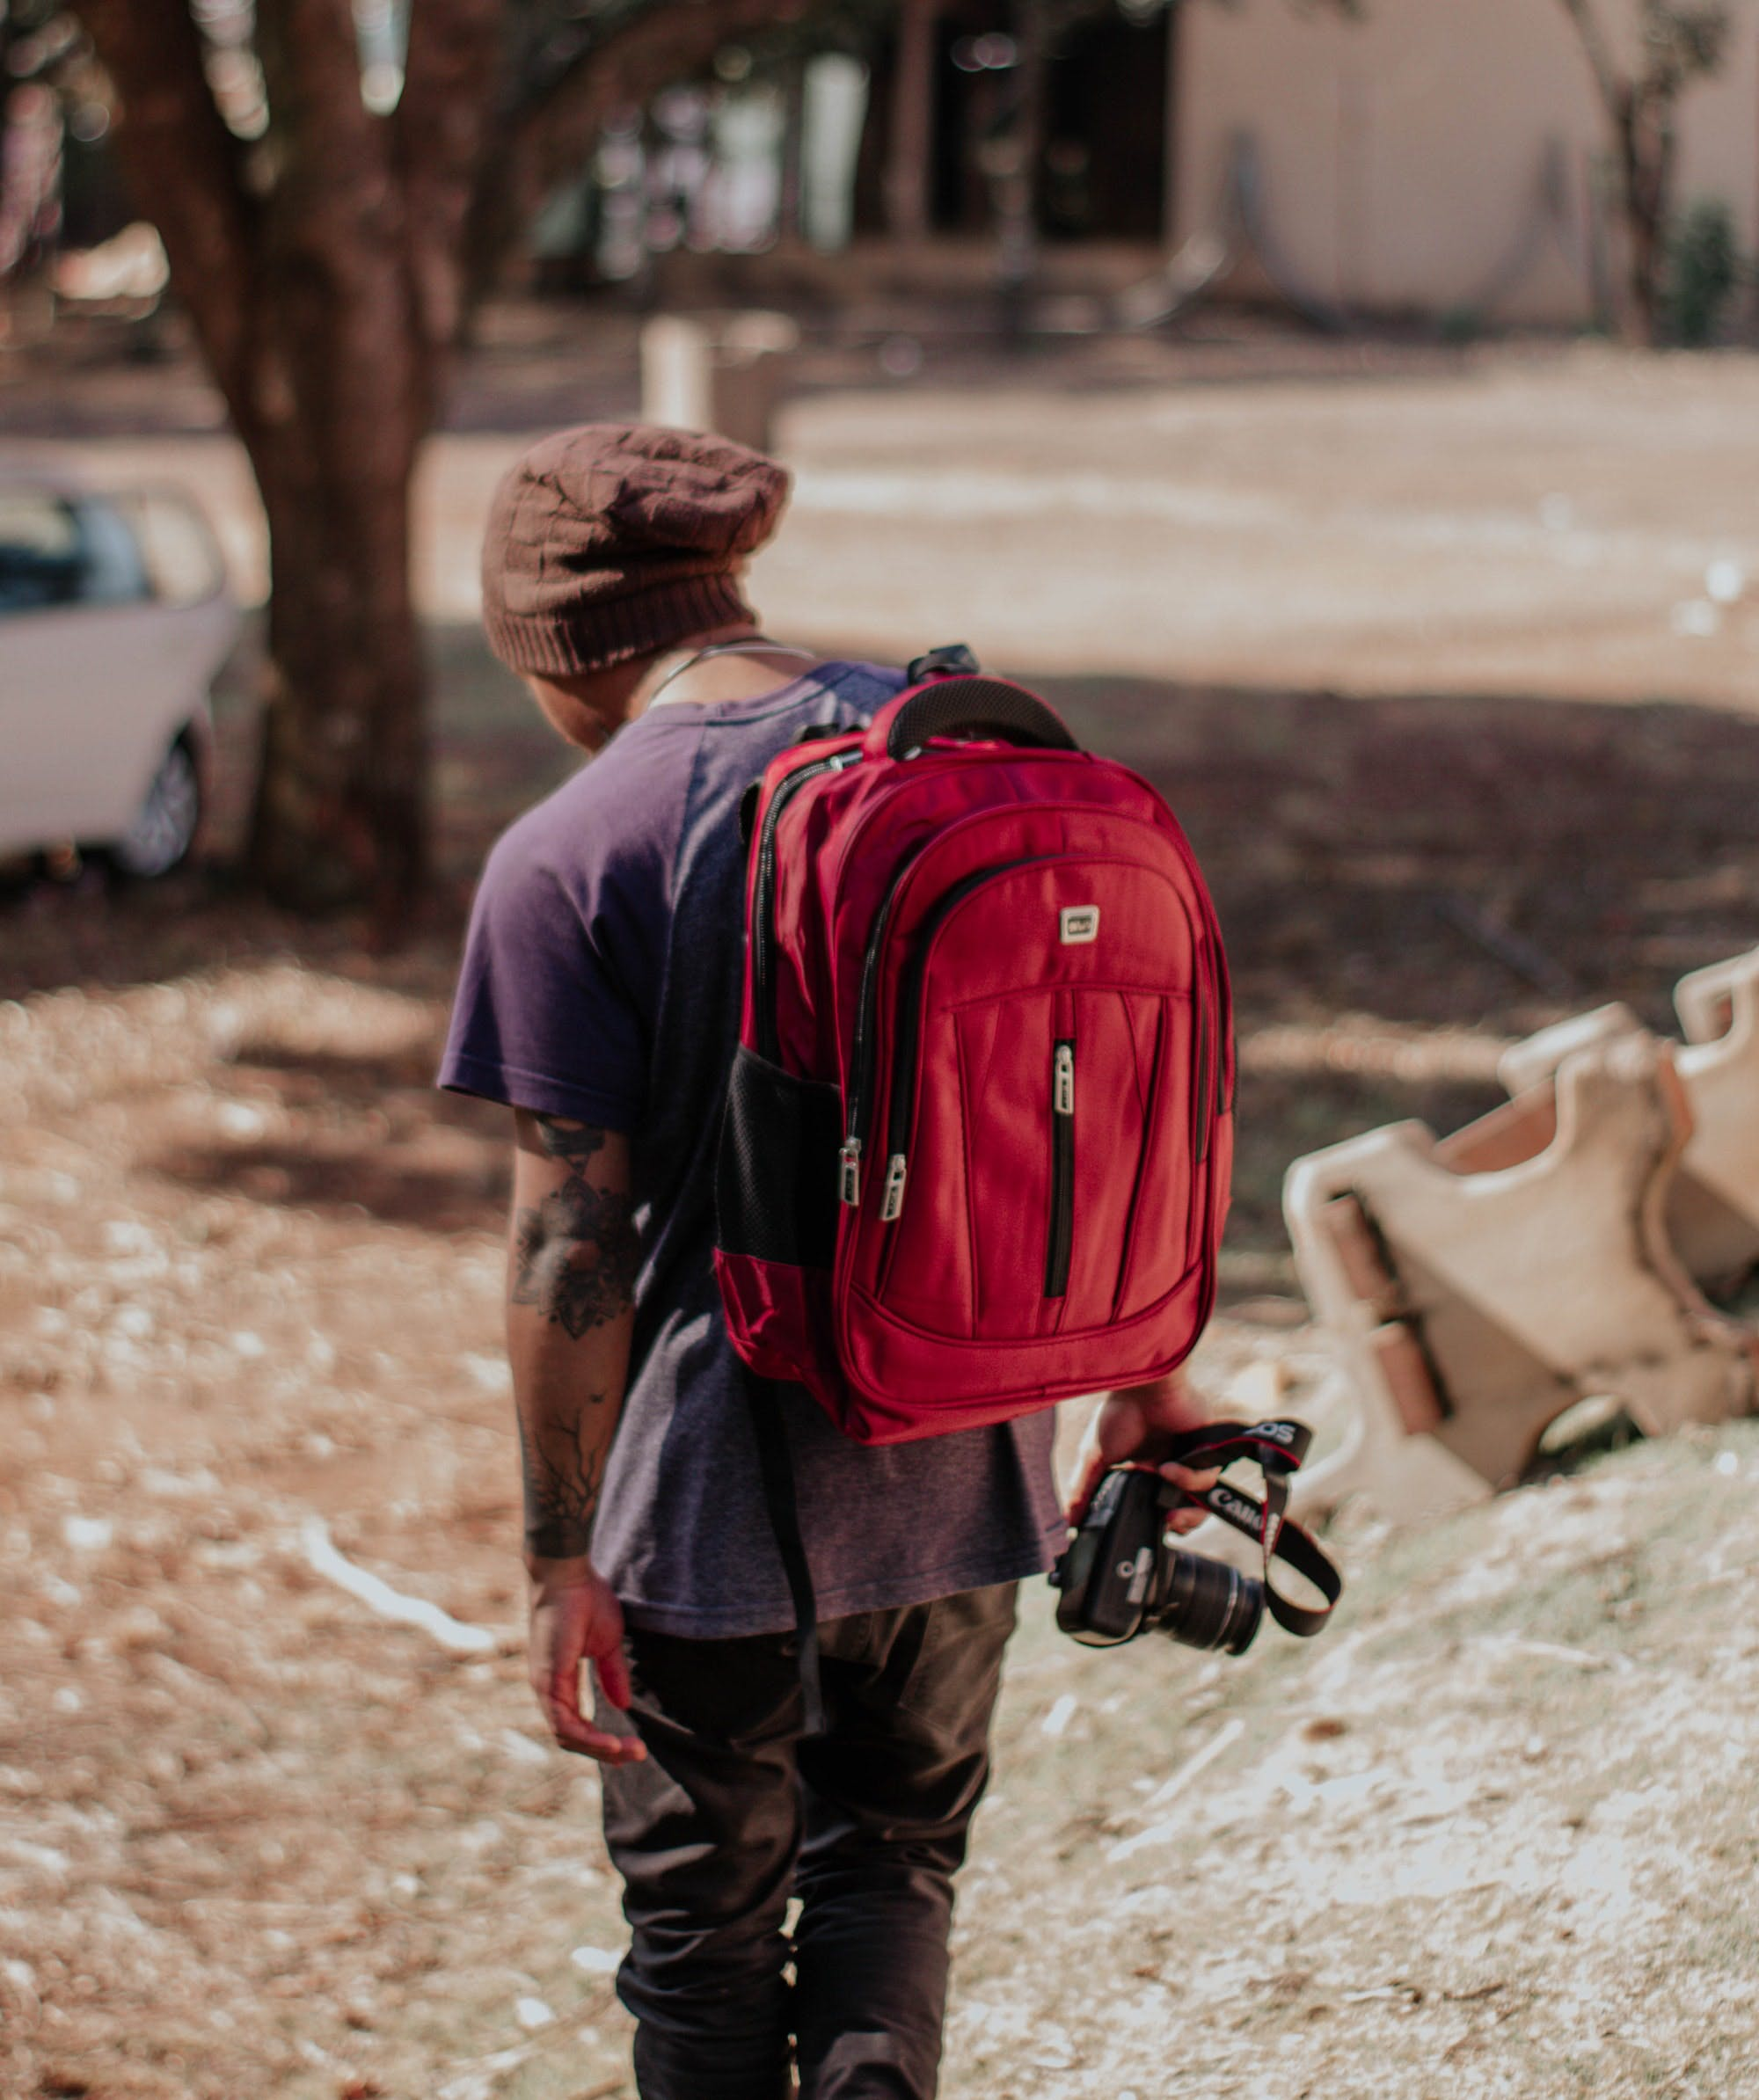 Man Holding Camera Using Red Backpack